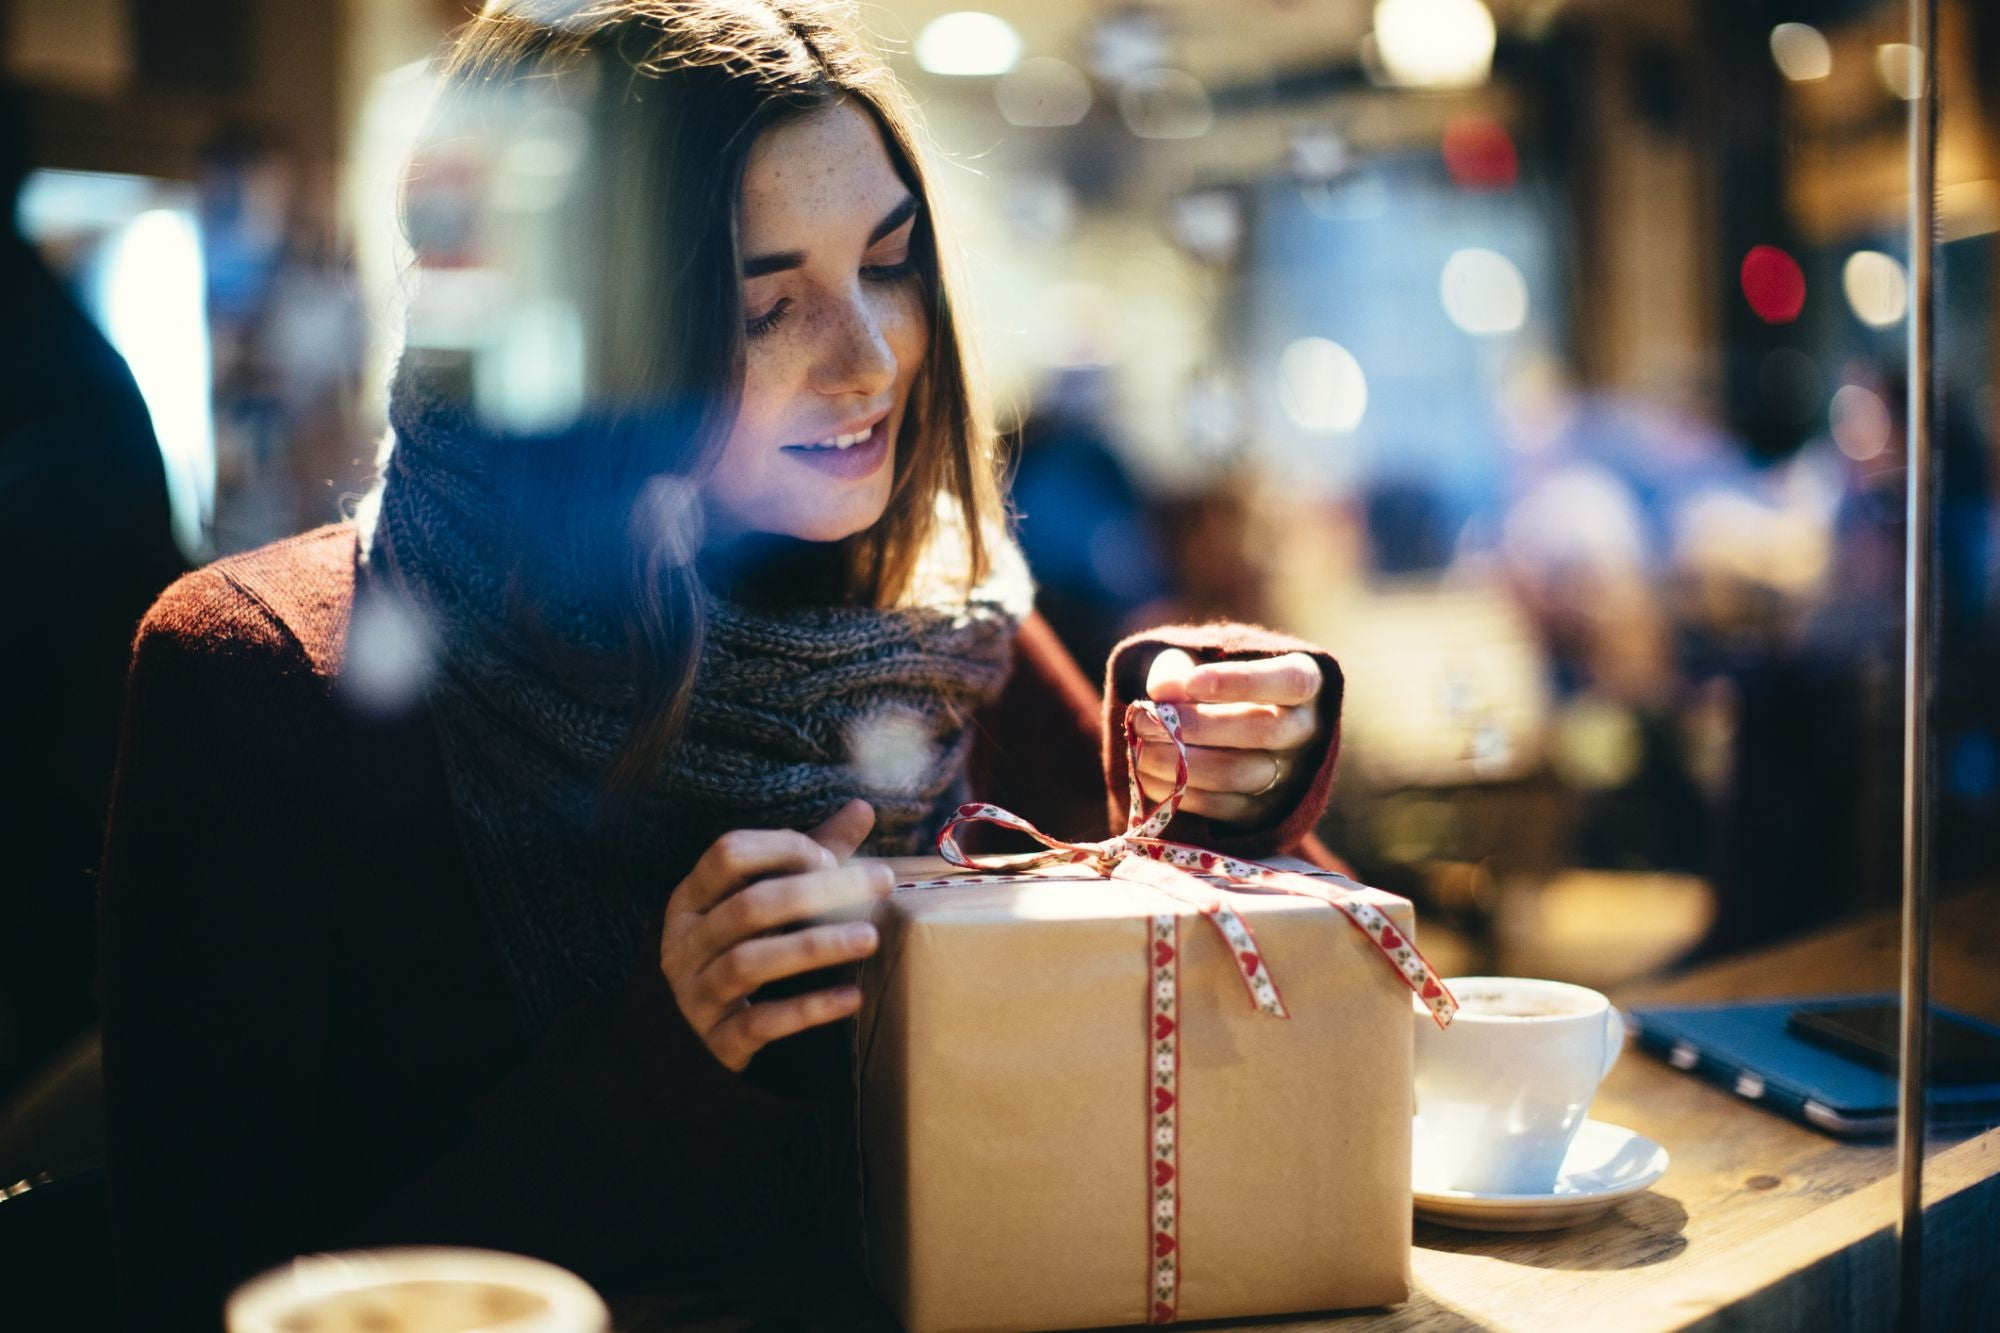 QnA VBage 4 Cool Gifts for Tech Geeks for the Holiday Season